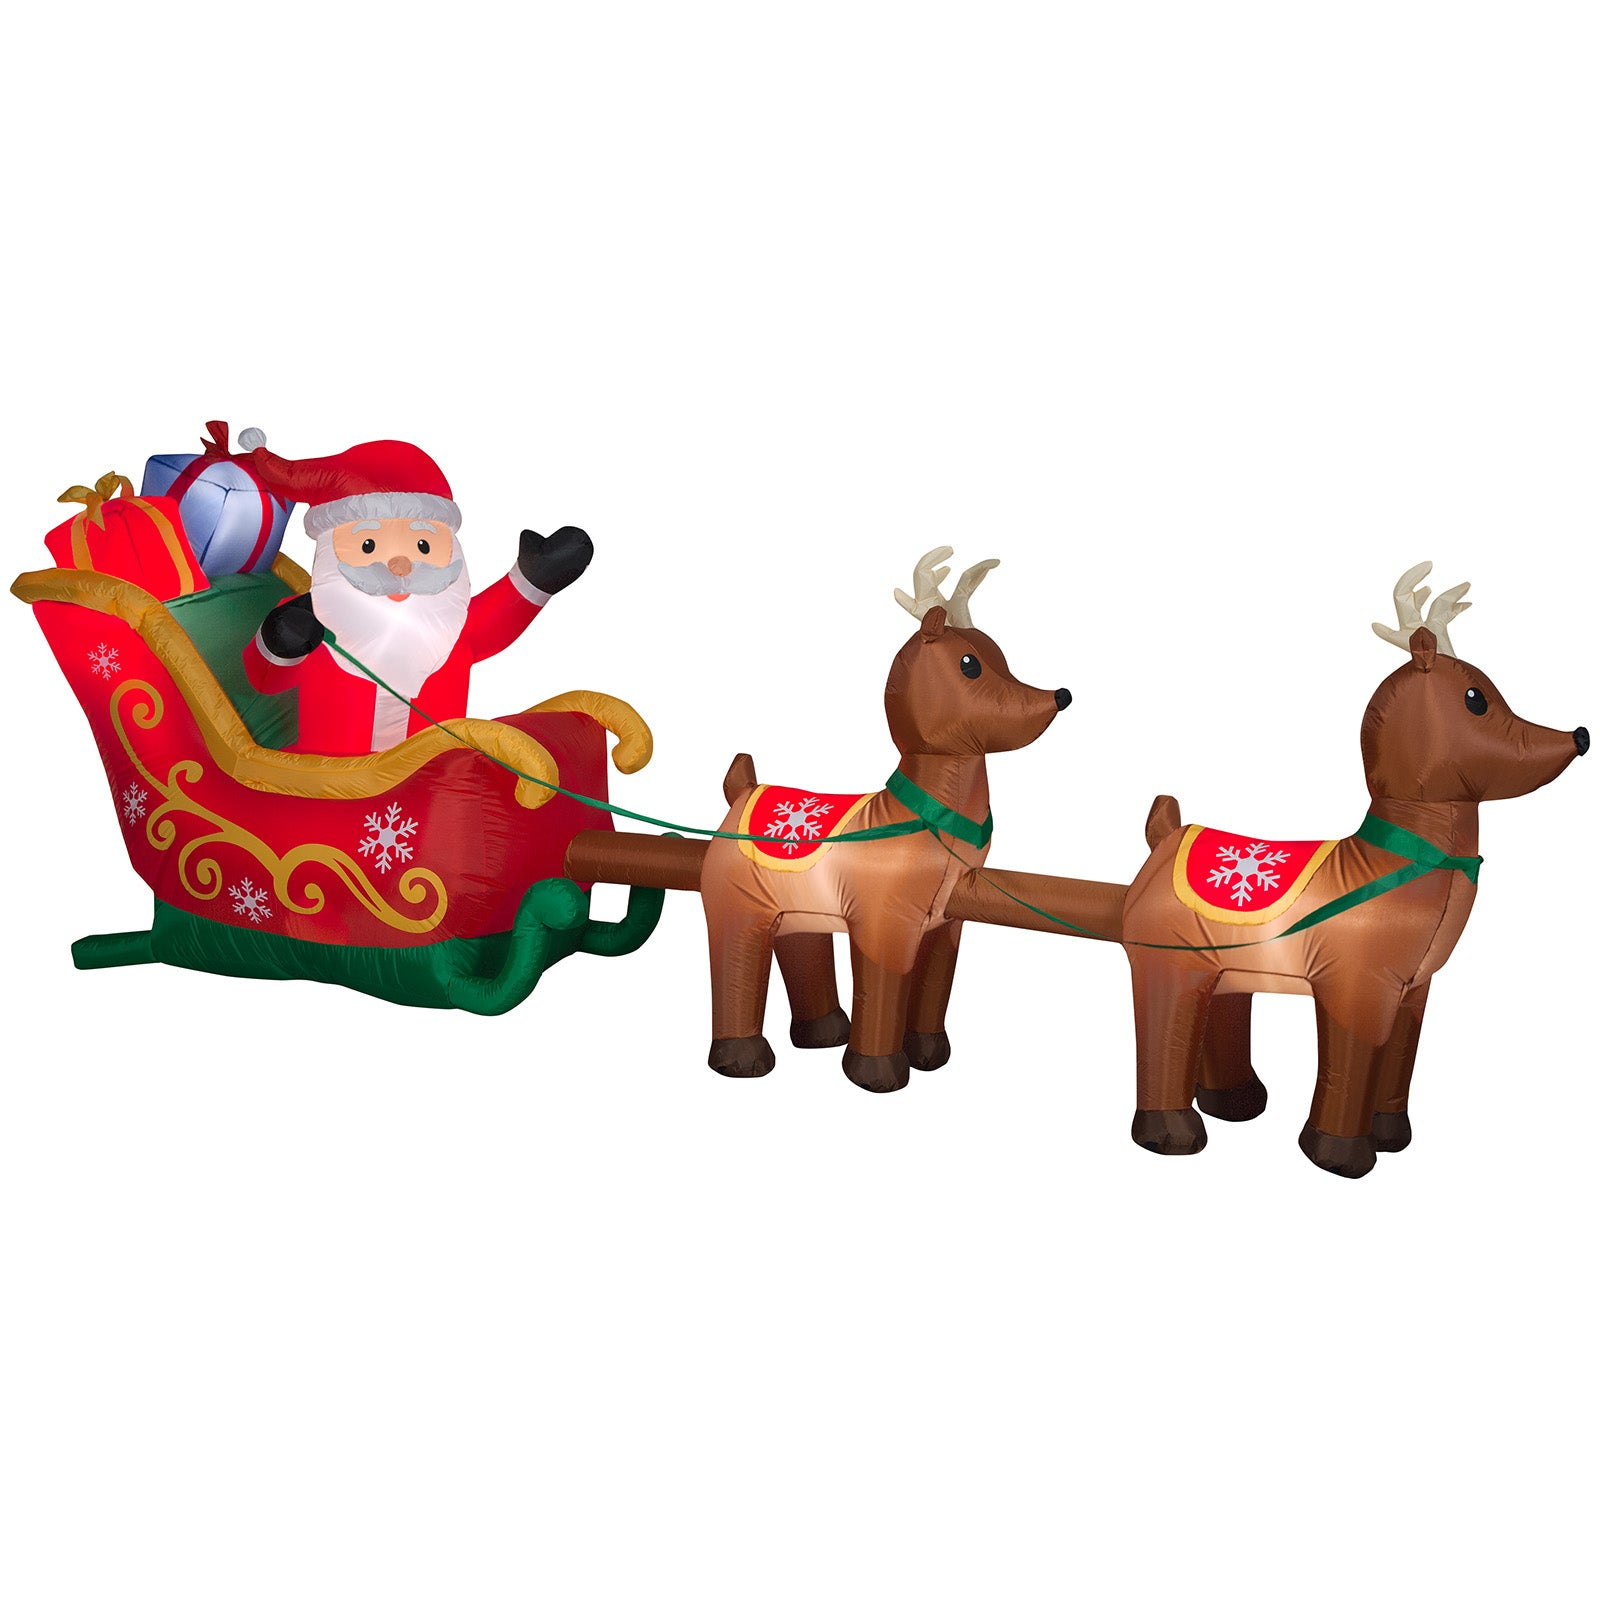 12.5' Wide Airblown Santa and Sleigh w/ Reindeer Scene Christmas Inflatable